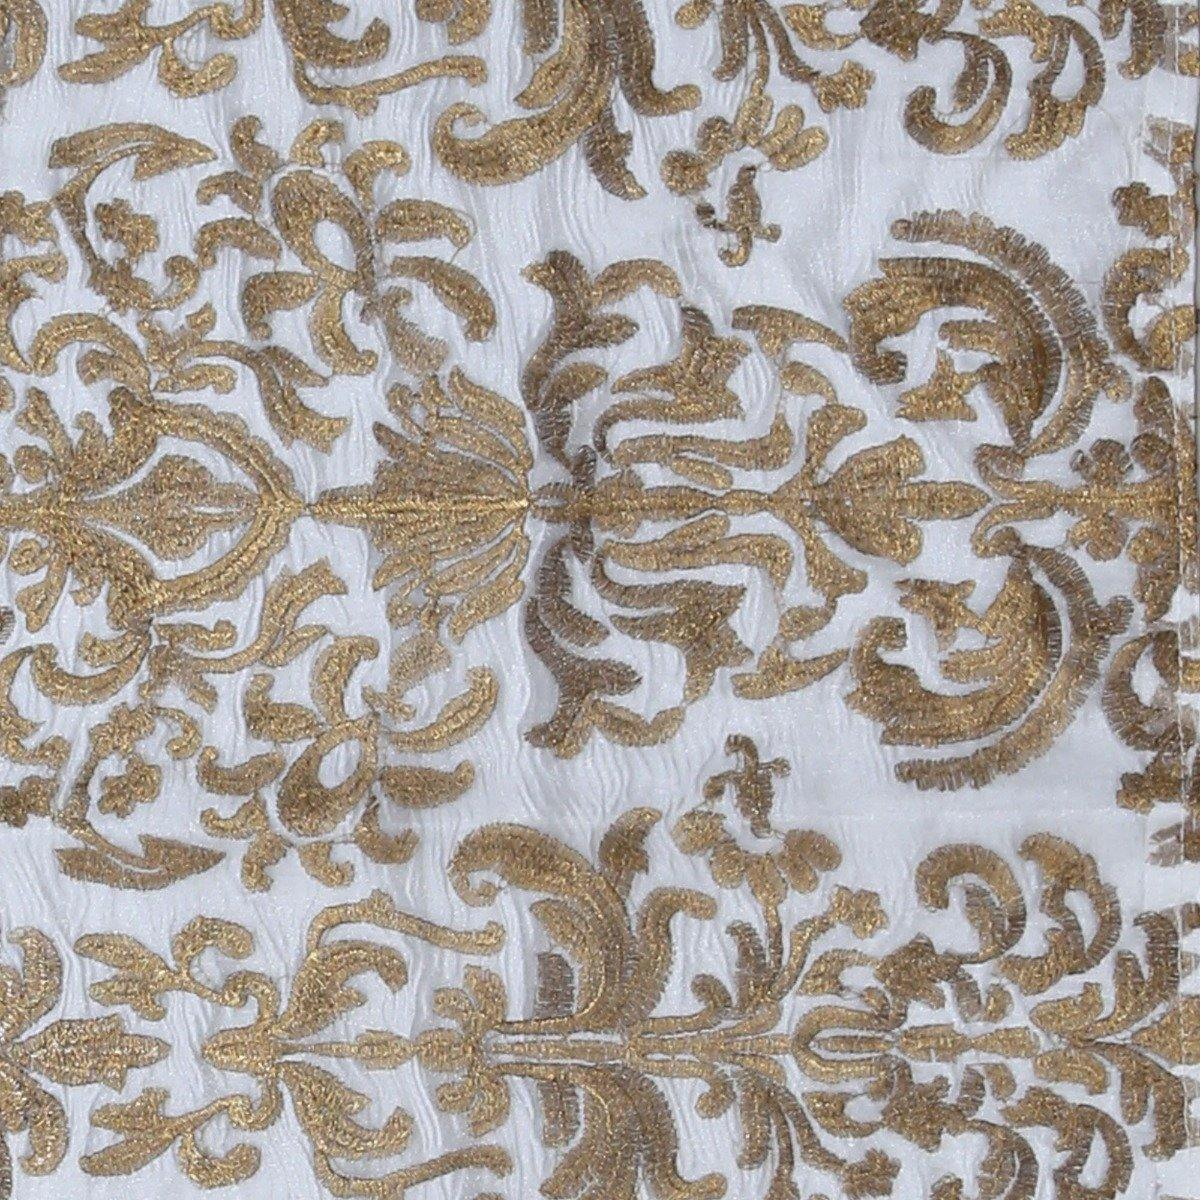 Half Yard Golden and Bronze Embroidered Organza Fabric Table Runner